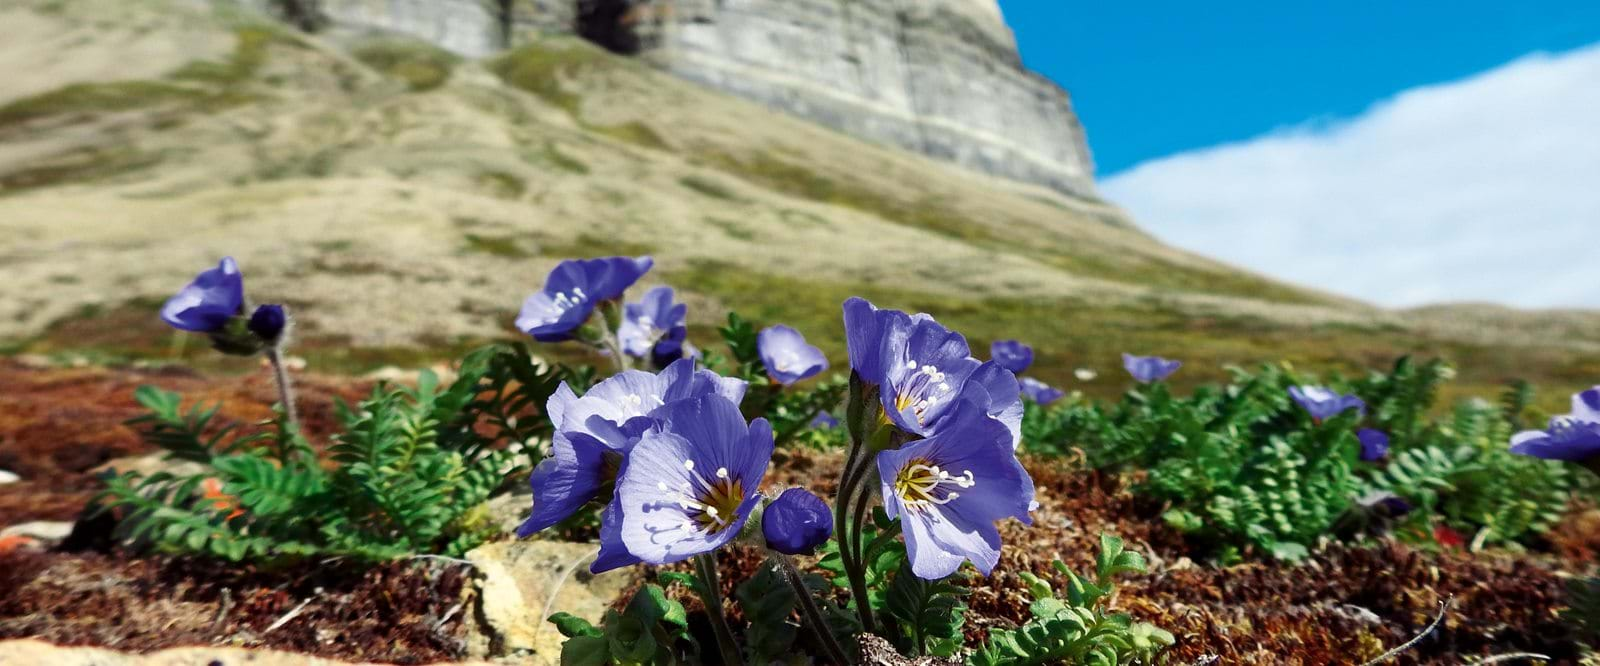 Boreal Jacob's ladder, Svalbard, plants in the Arctic